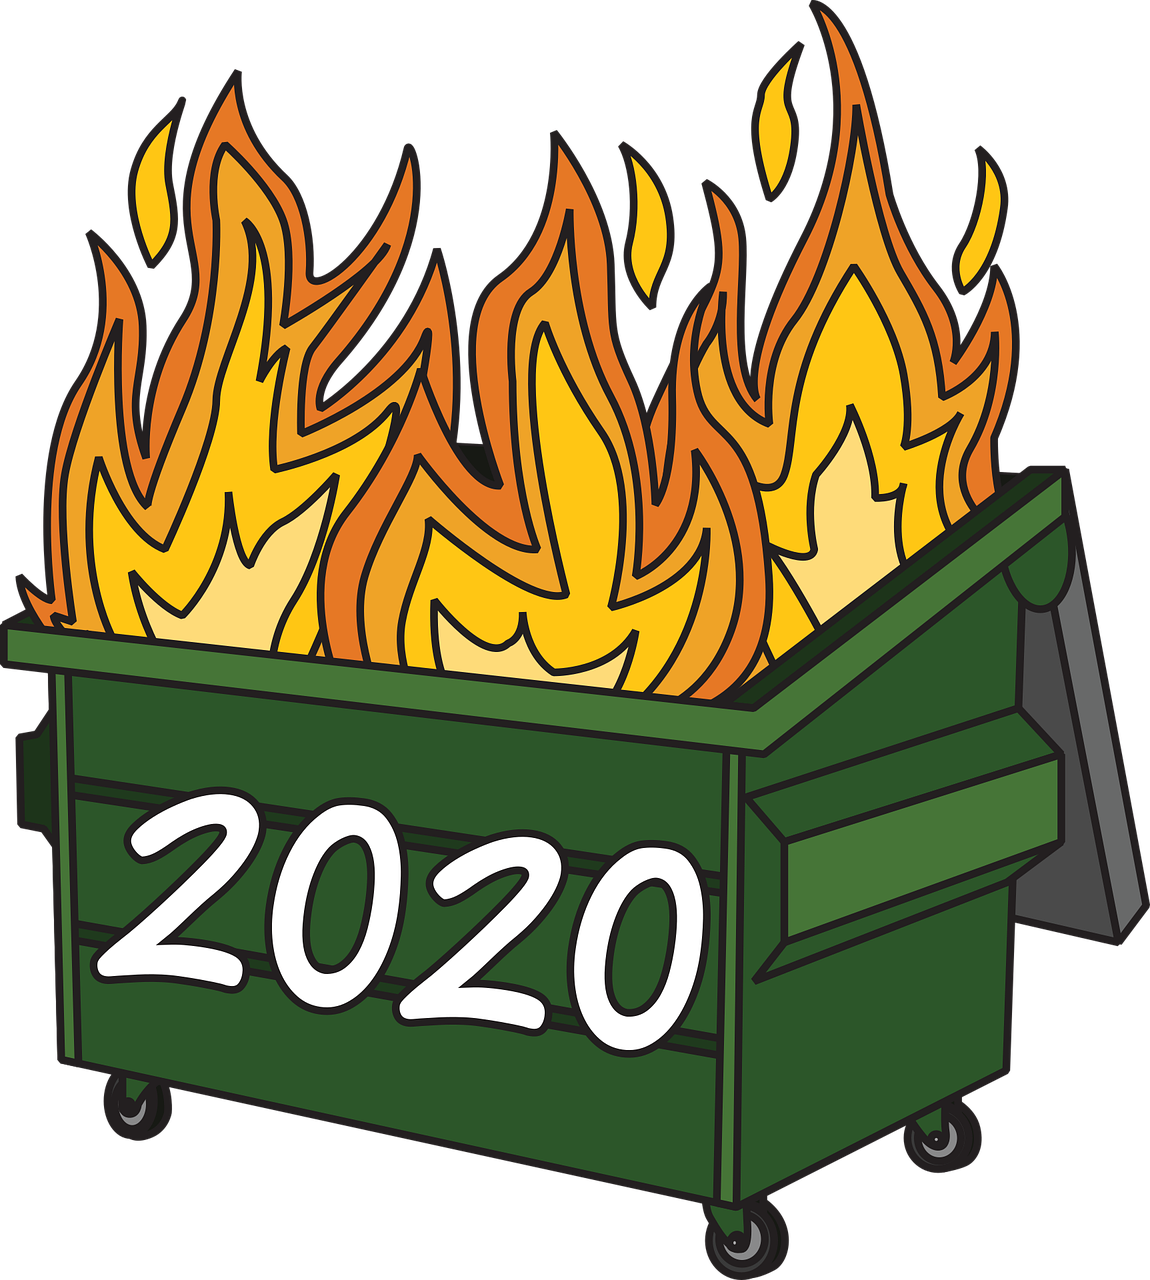 Dumpster on fire with 2020 on the outside